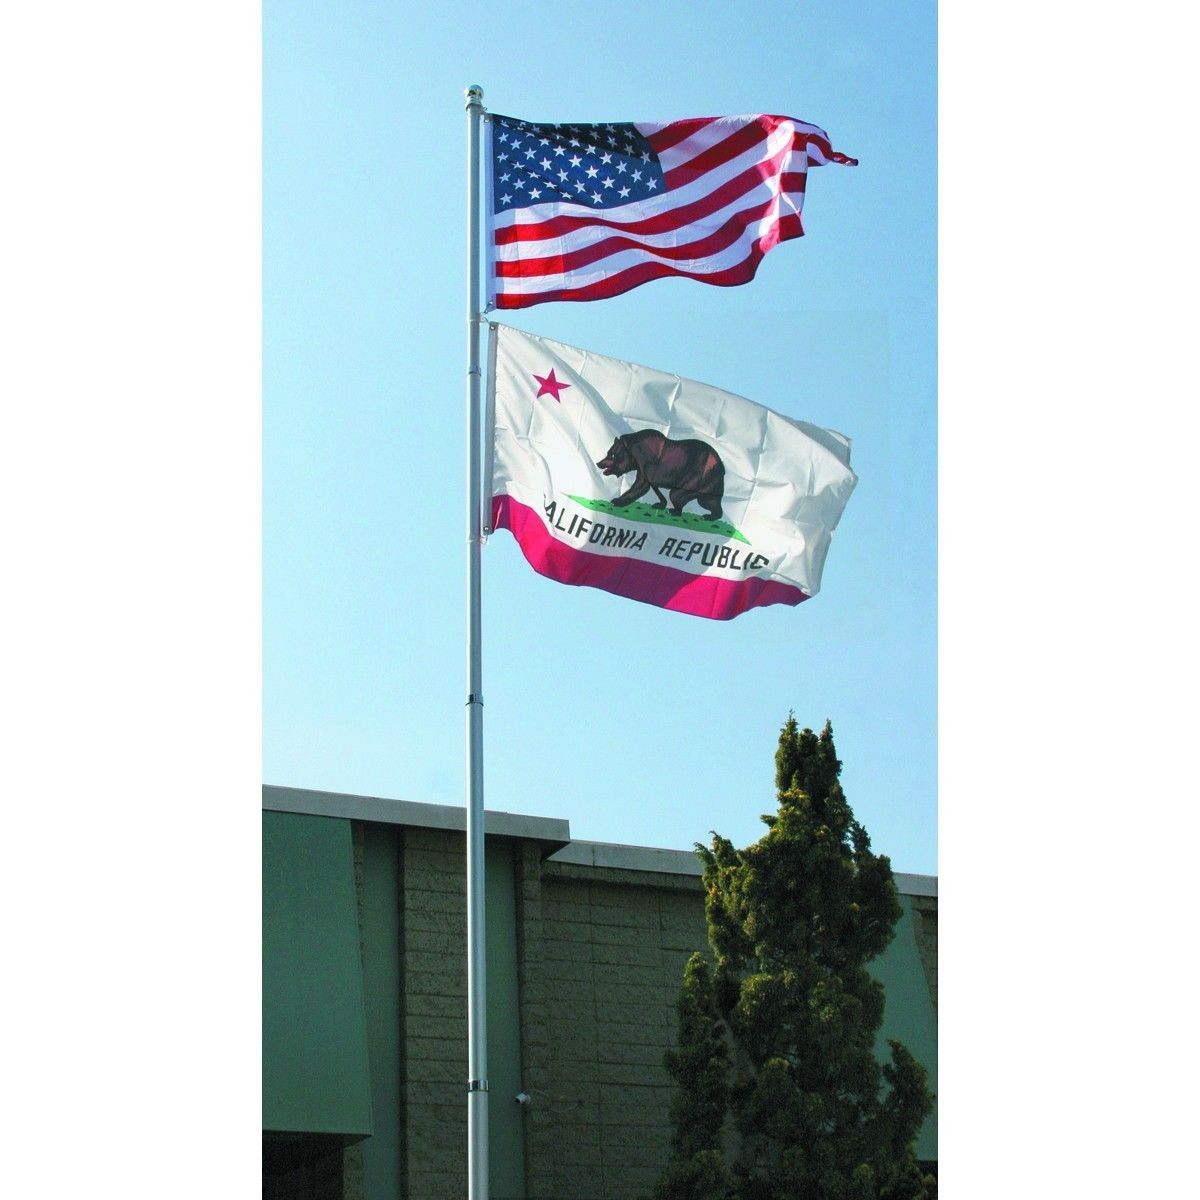 18 FT. STEEL FLAGPOLE W/ 3'x5' U.S.FLAG  2'x3' STATE FLAG &(2) CAR ANTENNA FLAGS